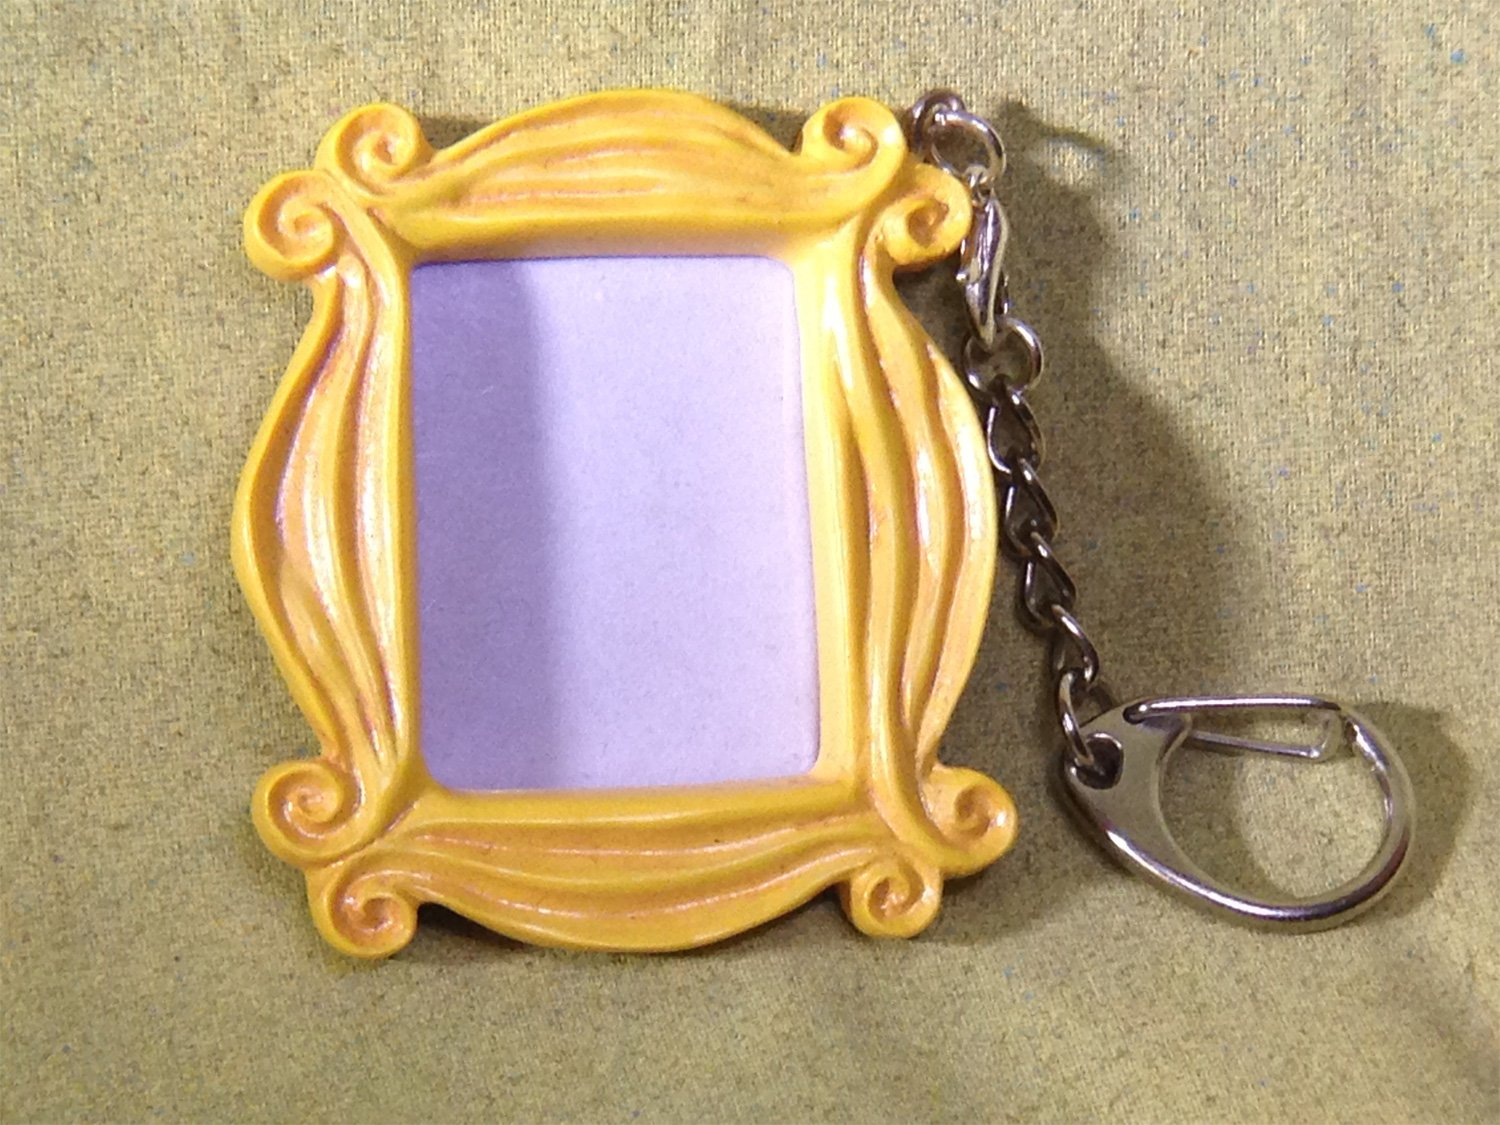 Friends Peephole Frame Necklace, Keychain Reel Art Friends-FrameNeck